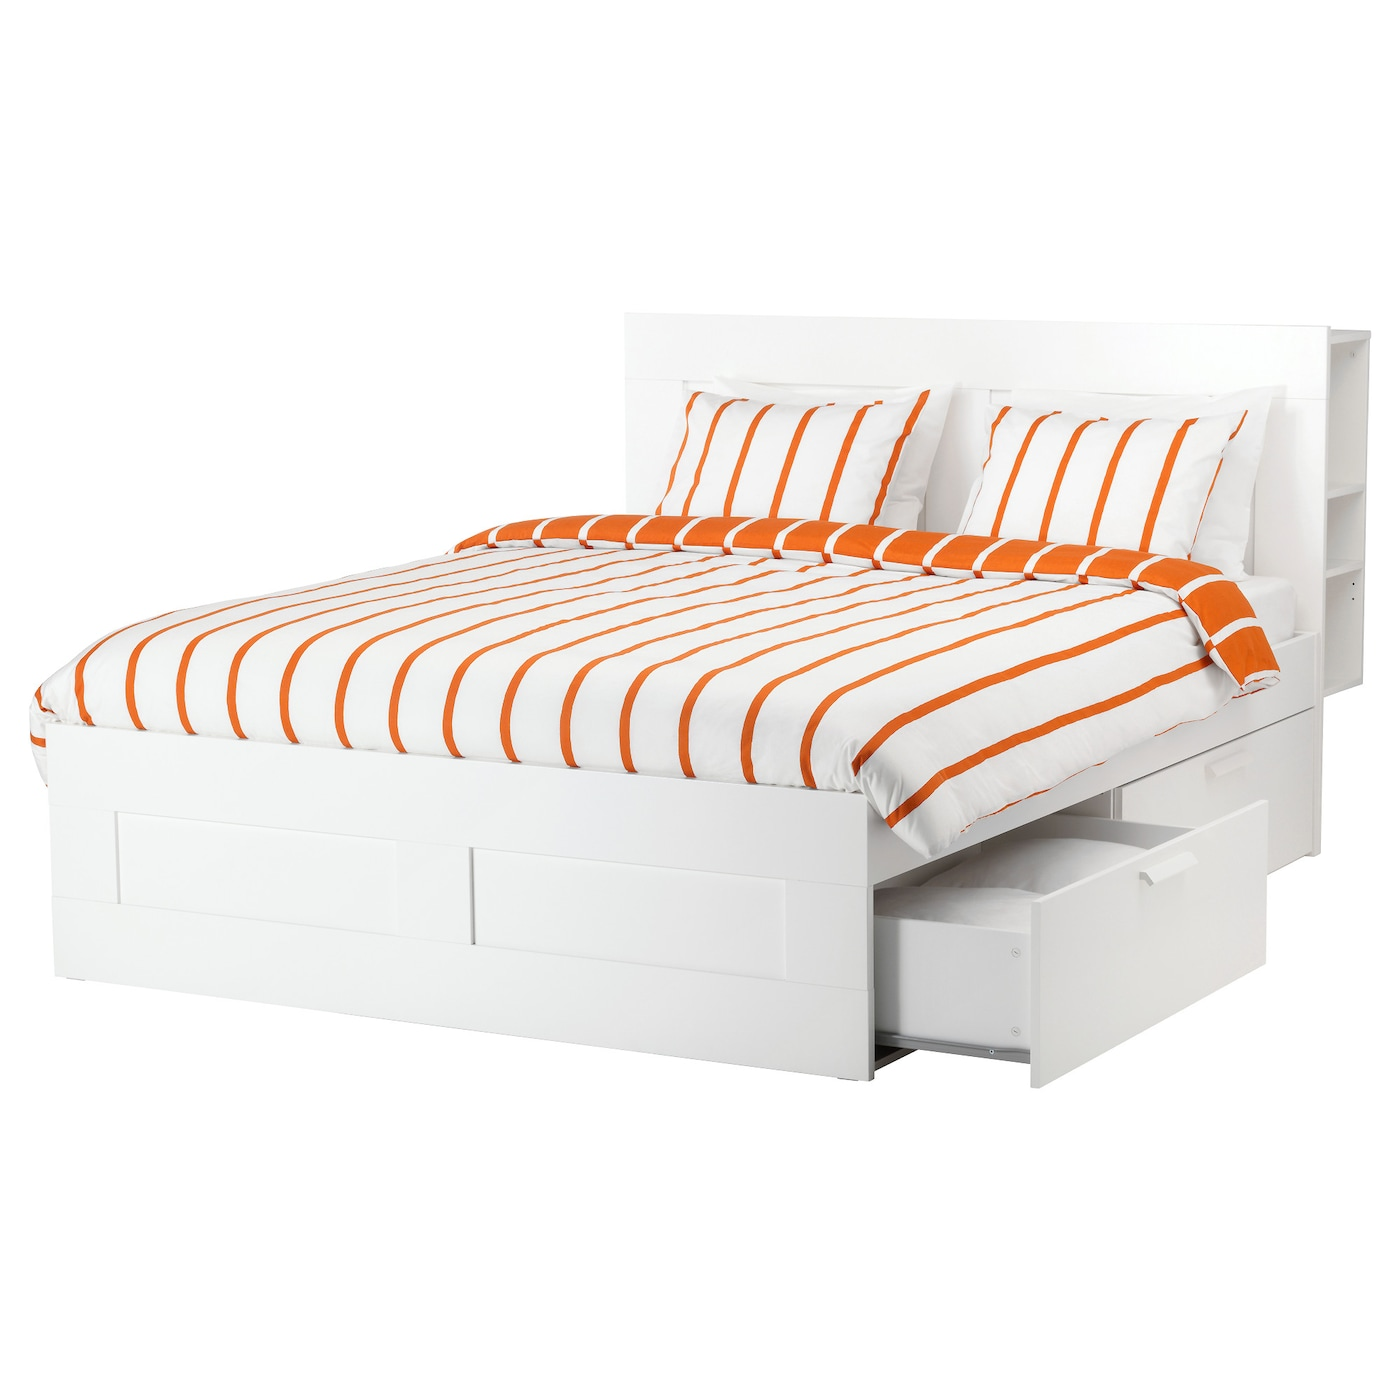 Double & King Size Beds & Bed Frames IKEA